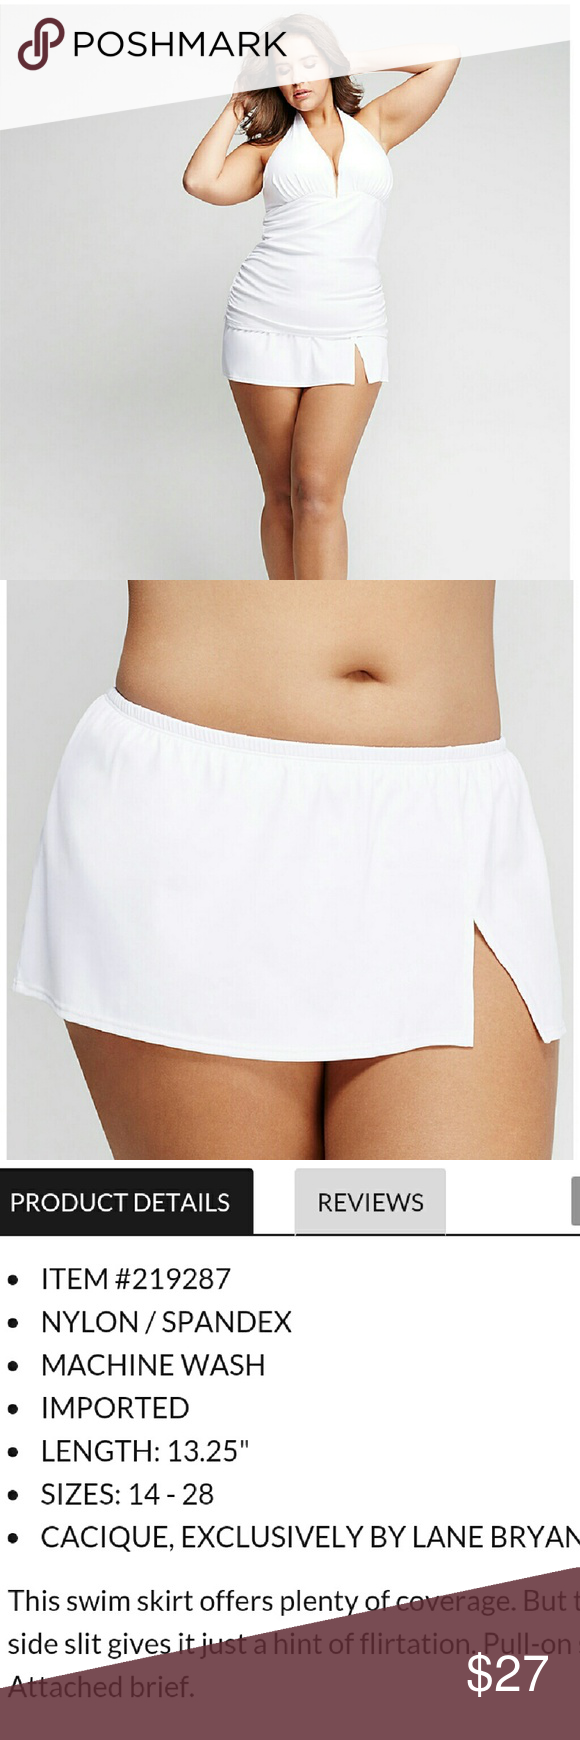 Lane Bryant Swim Skirt Slit 20 White New Full coverage  Attached brief Machine wash BOTTOM ONLY Lane Bryant Swim